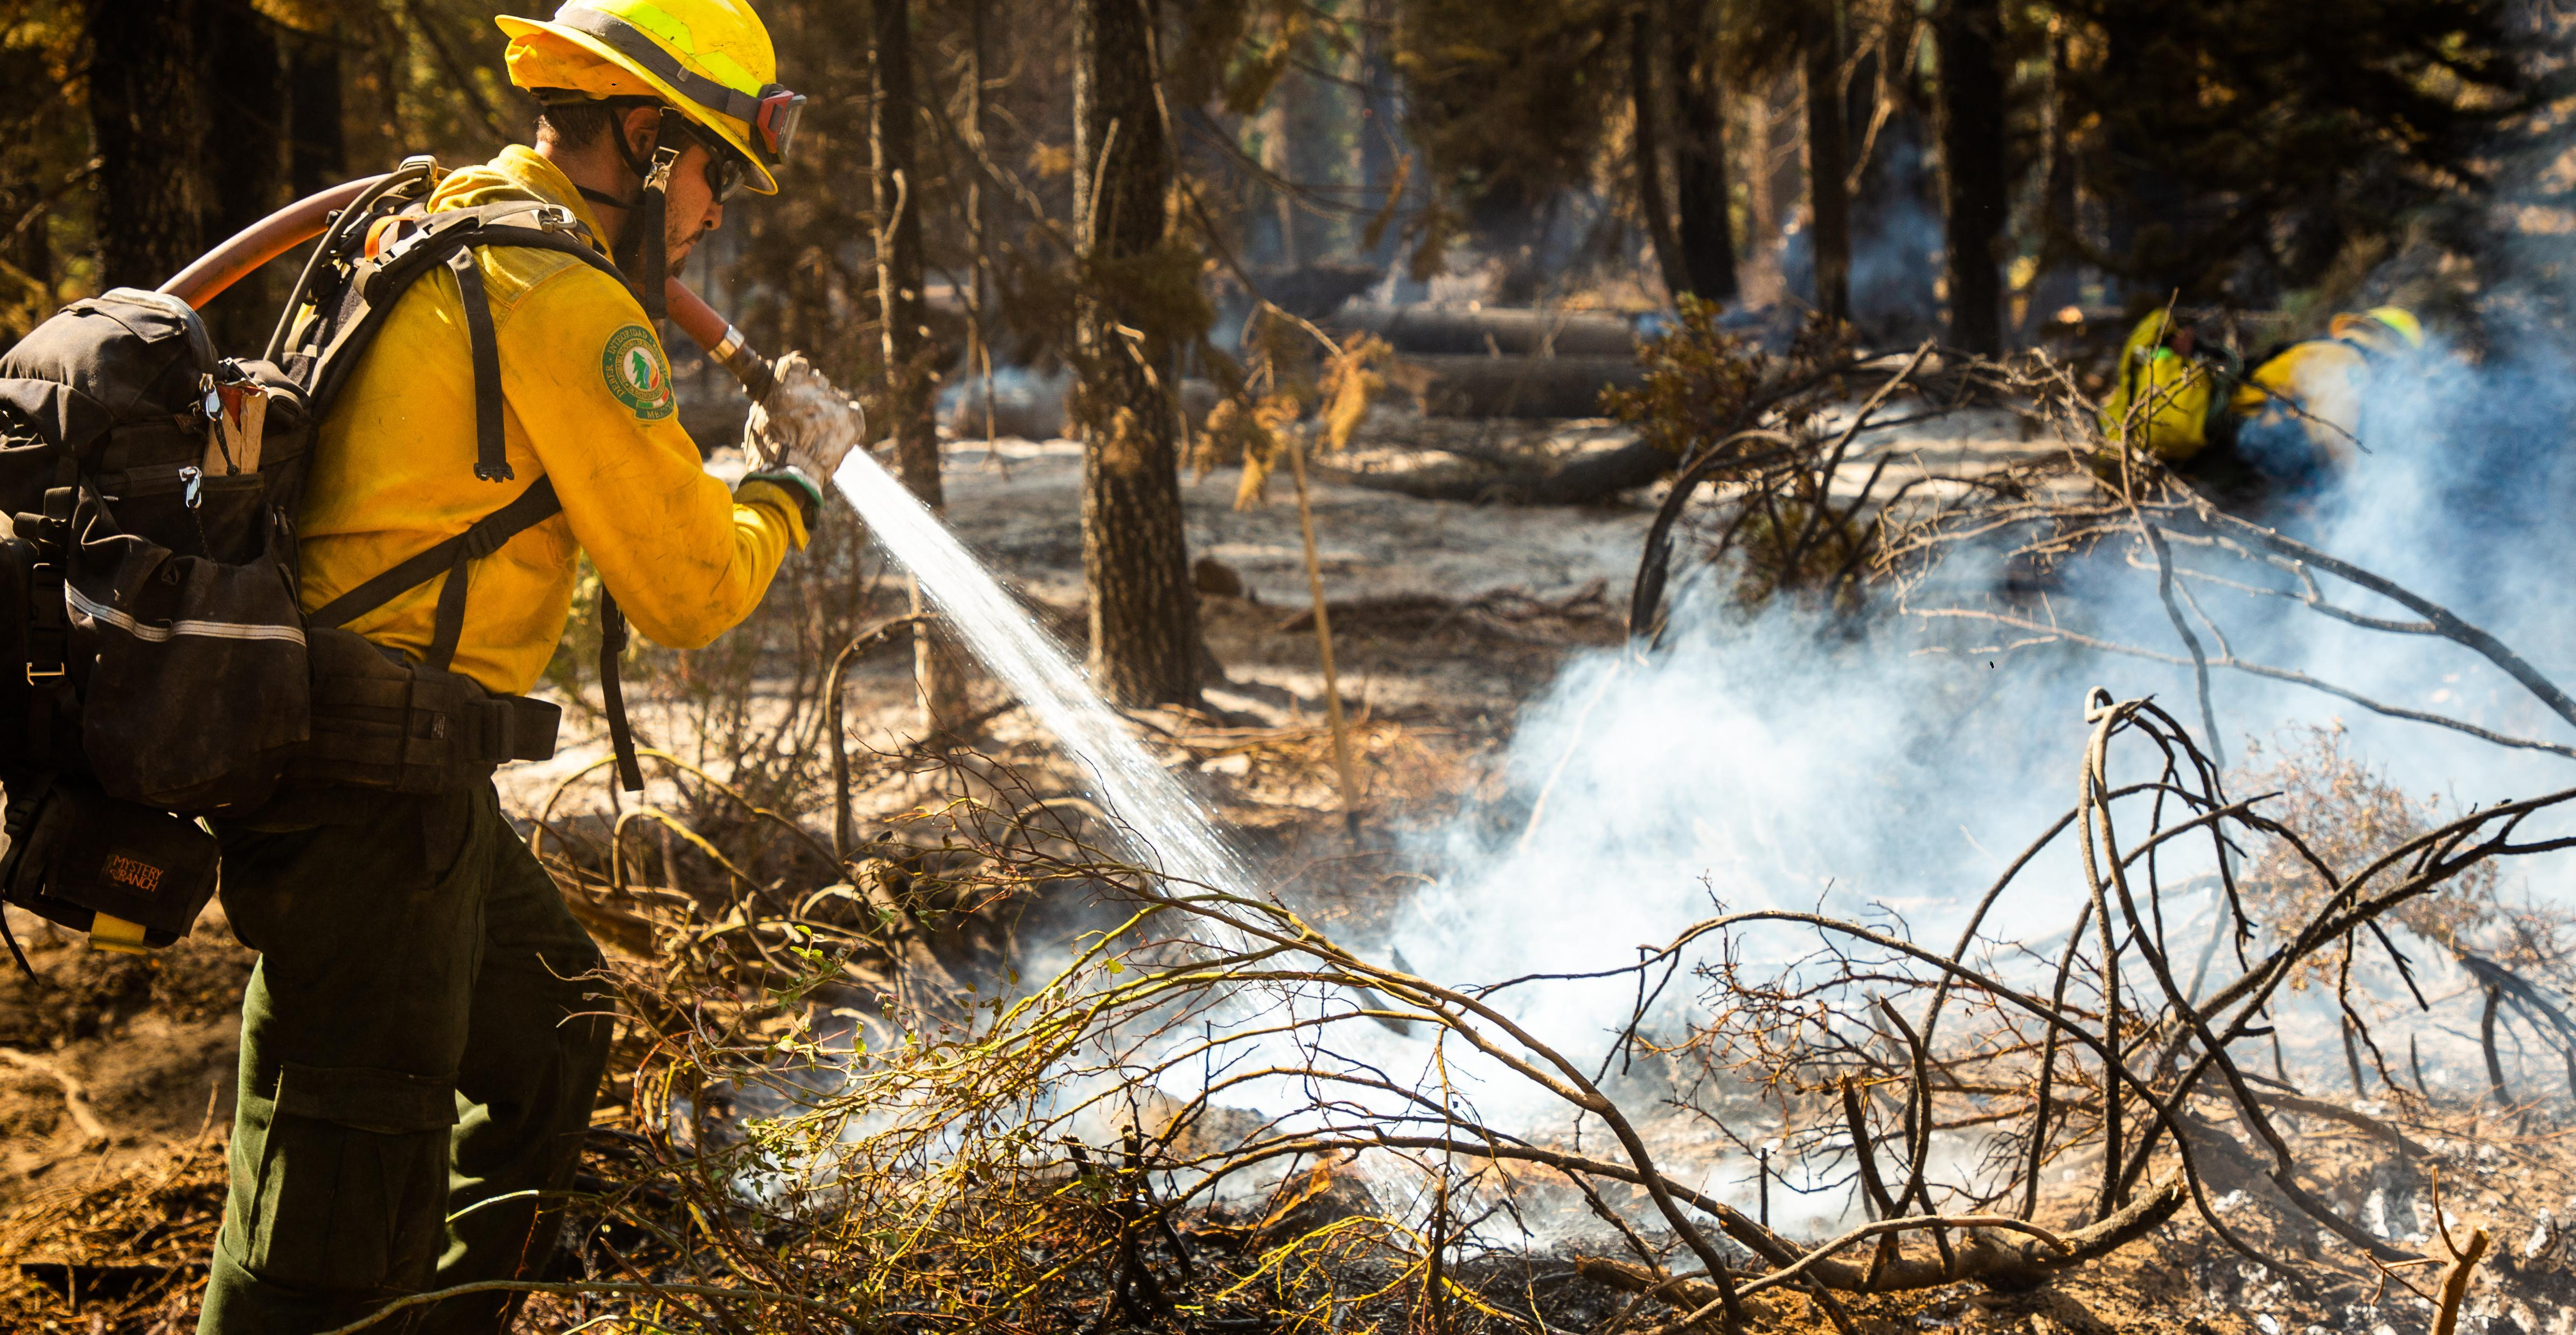 Firefighter sprays water to put out a residual hotspots